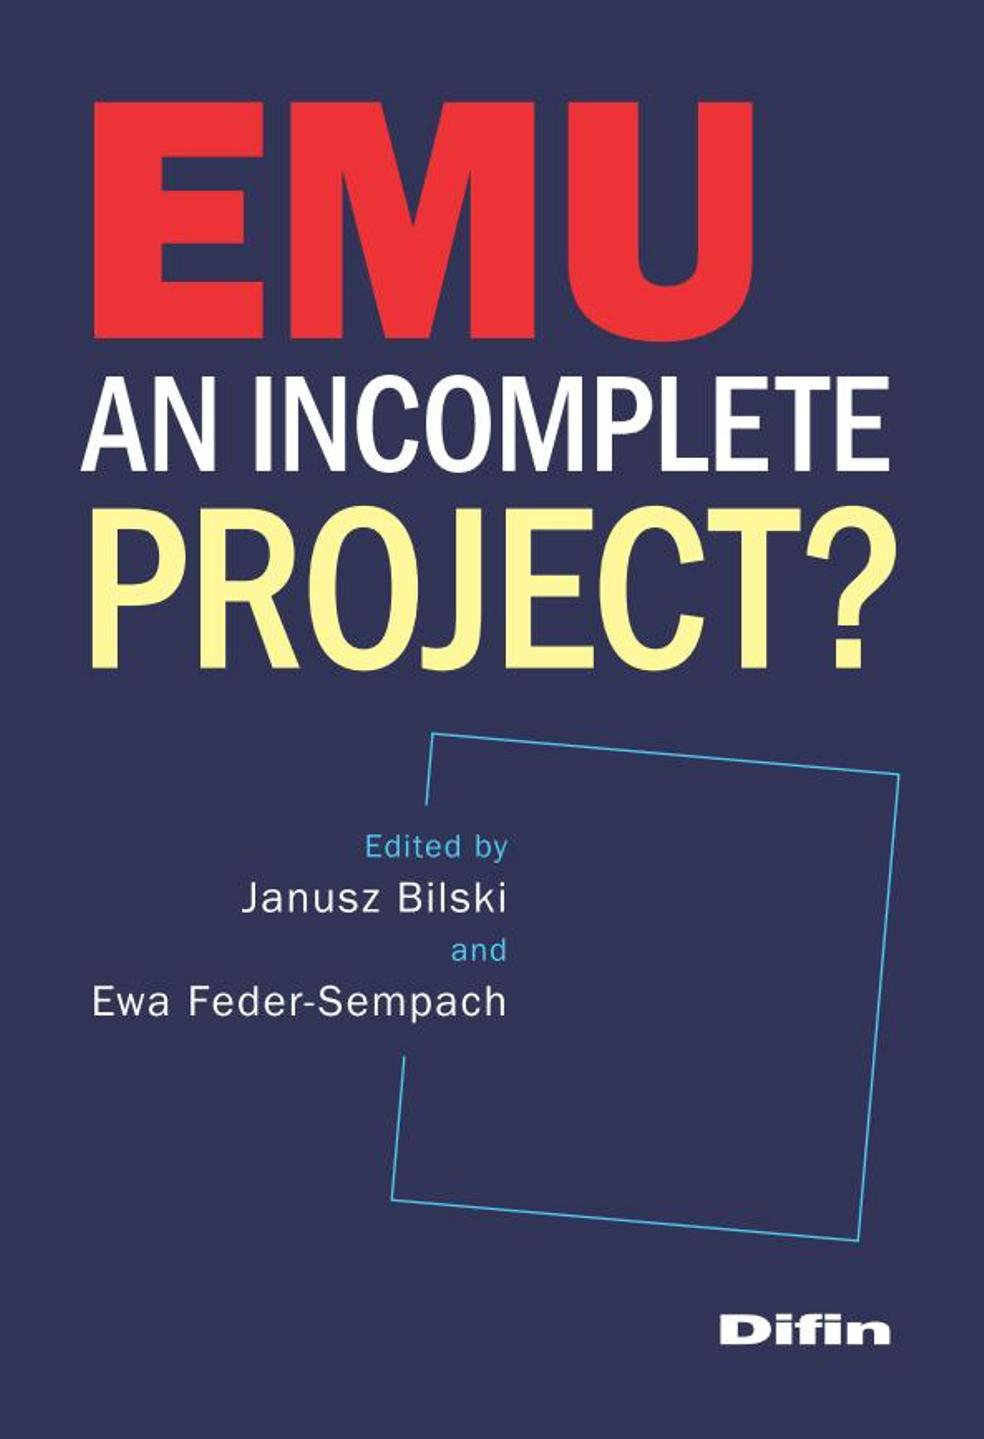 EMU an incomplete project?